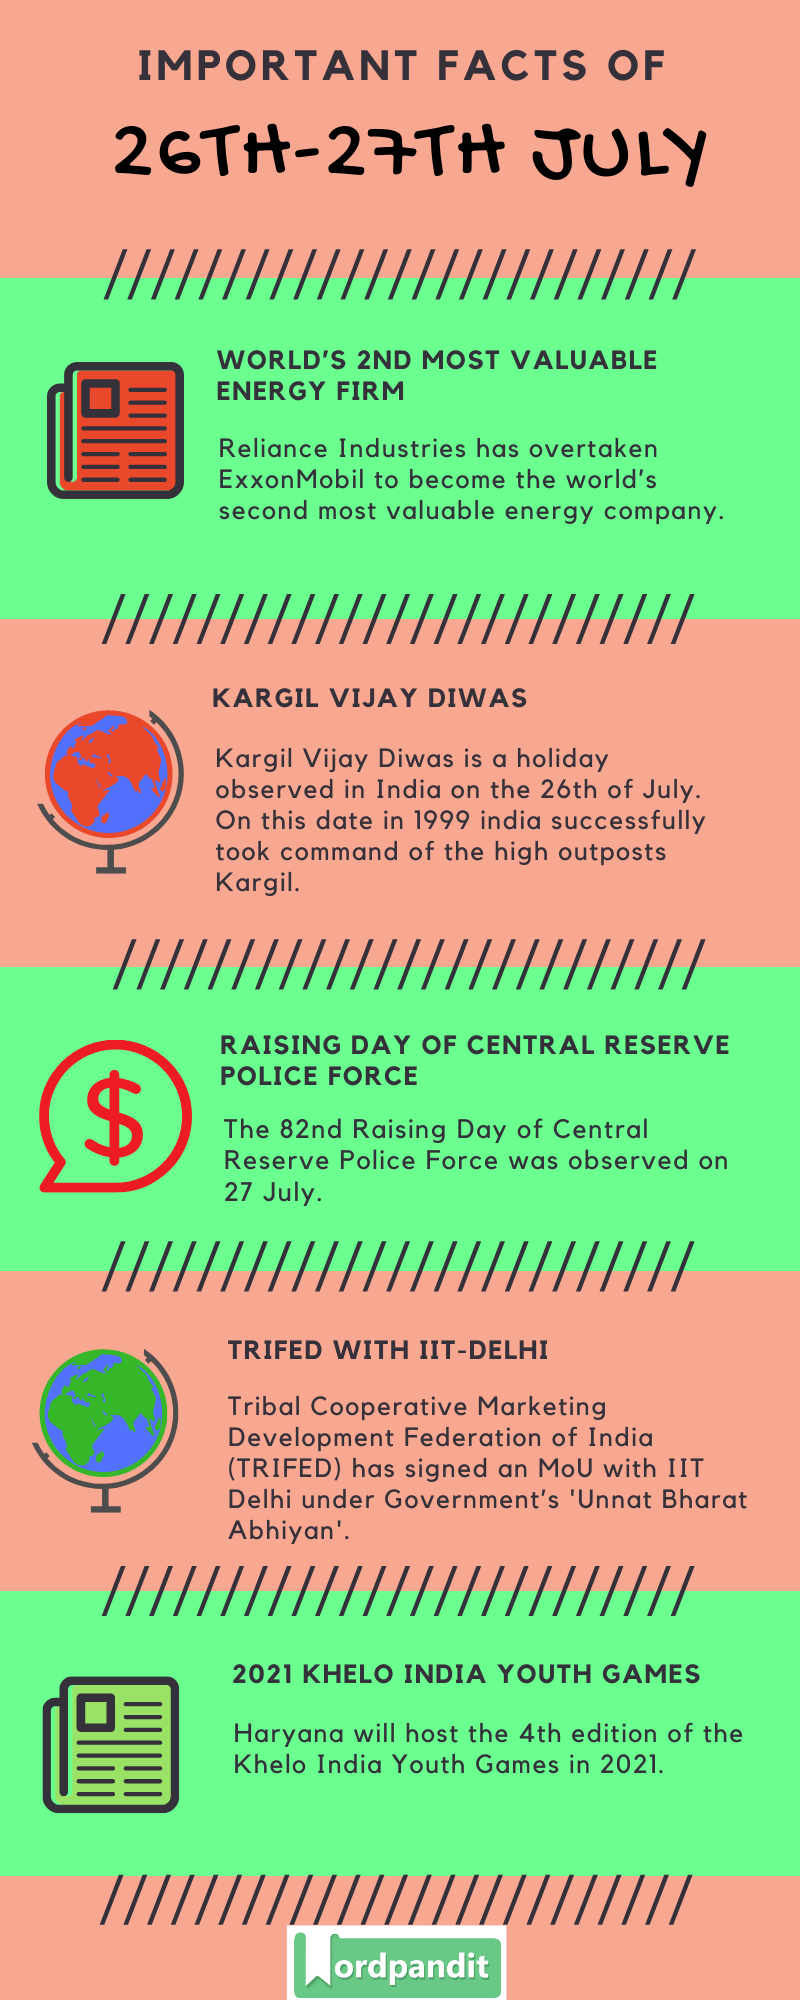 Daily Current Affairs 26th-27th July 2020 Current Affairs Quiz 26th-27th July 2020 Current Affairs Infographic